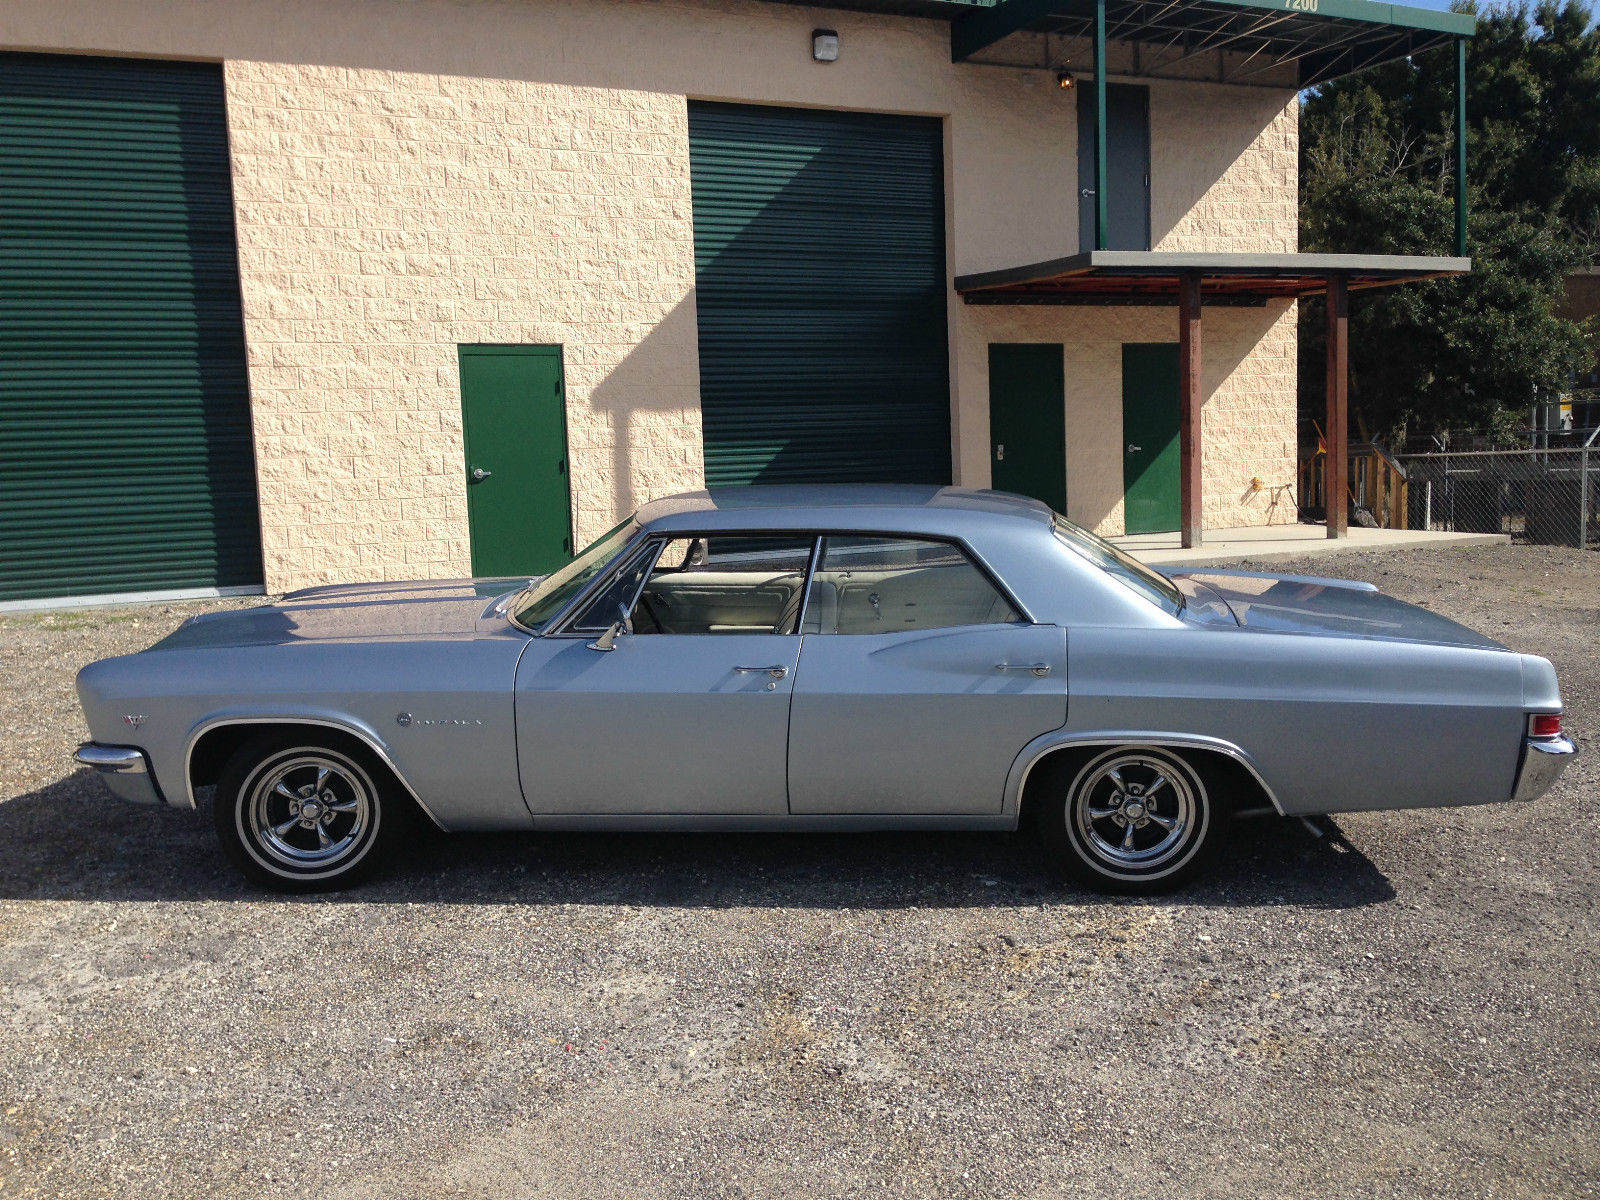 1966 Chevy Impala 4 Door Hardtop For Sale In Tampa